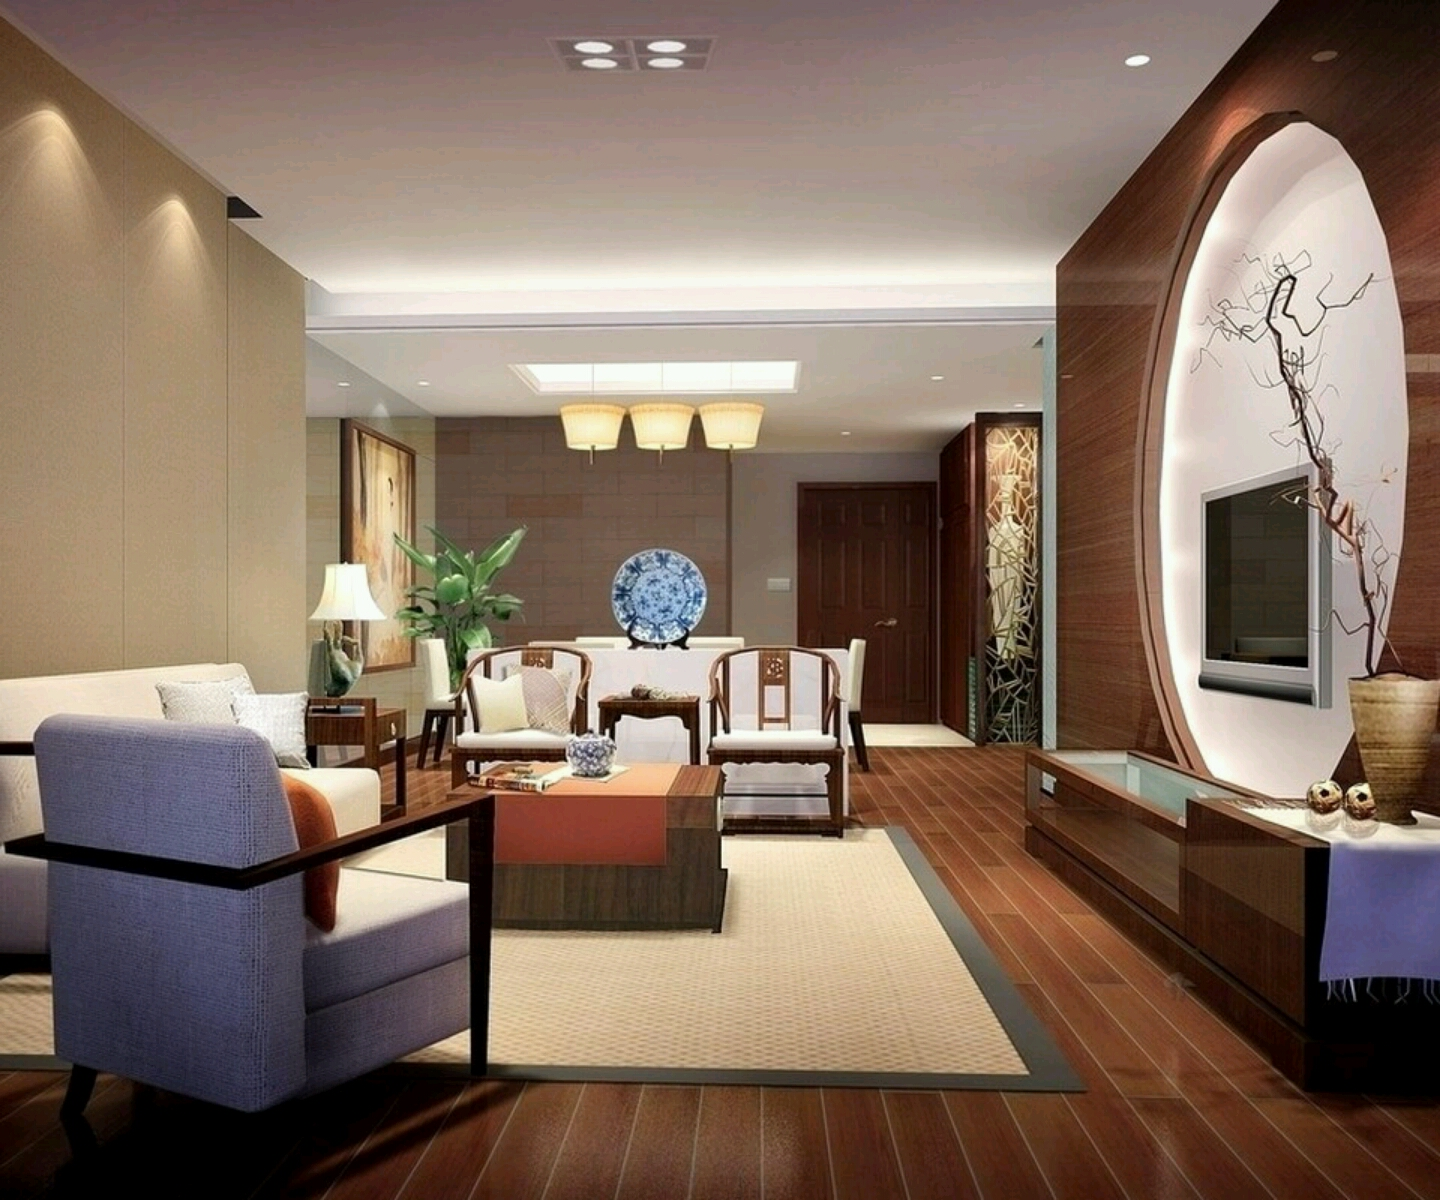 Luxury homes interior decoration living room designs ideas ...